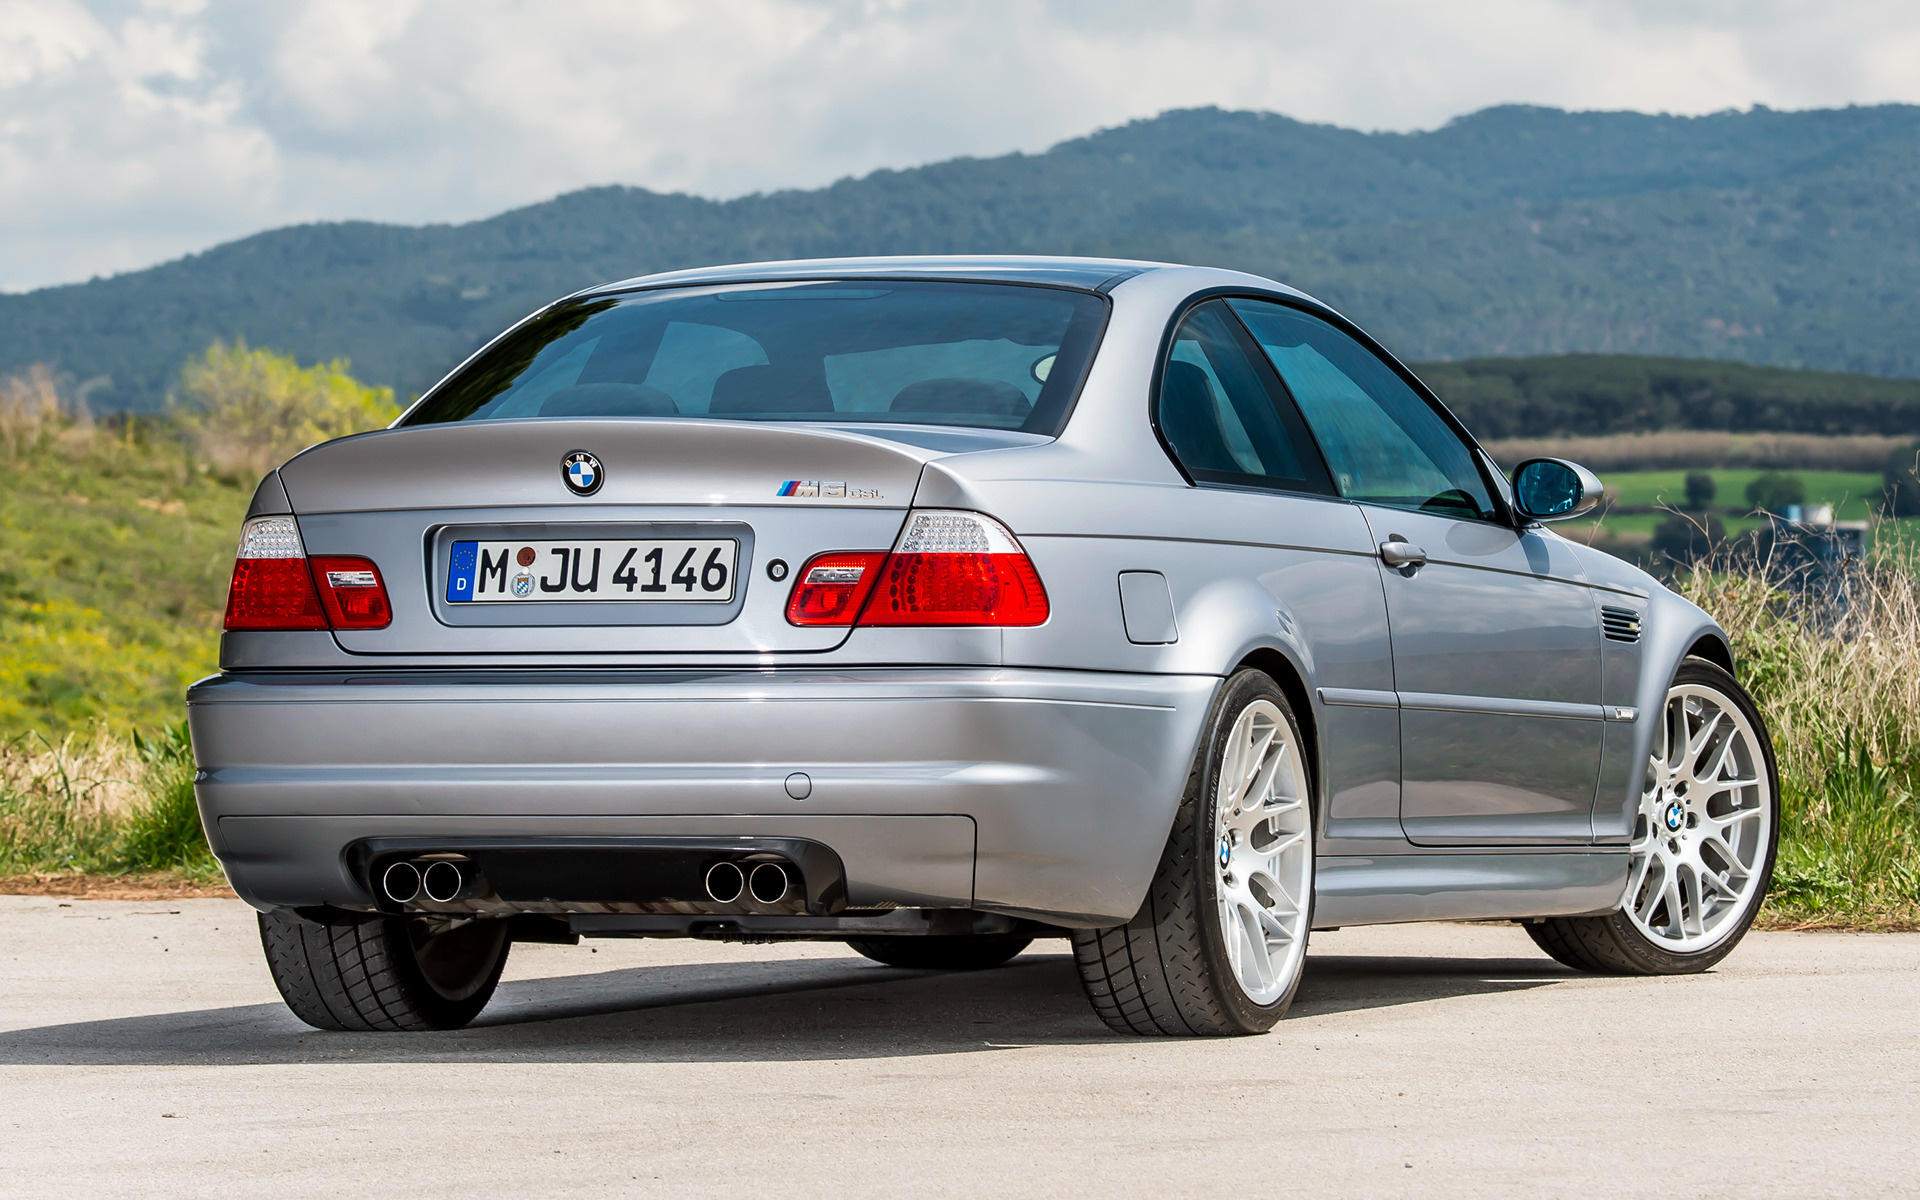 BMW M3 CSL Coupe (2003) Wallpapers and HD Images - Car Pixel